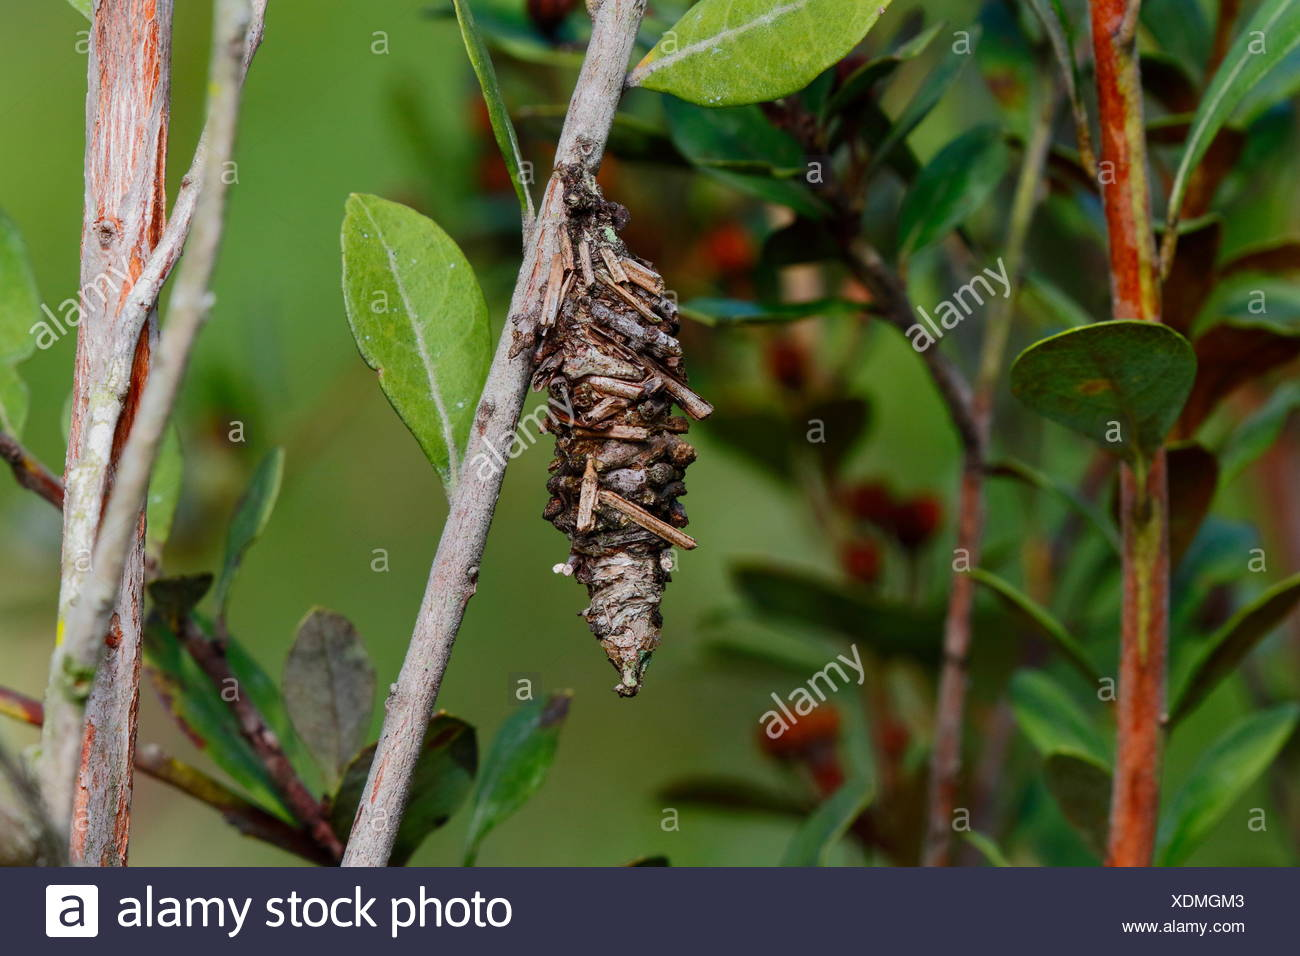 A bagworm moth, Psychidae, uses plant material to construct its bag. - Stock Image